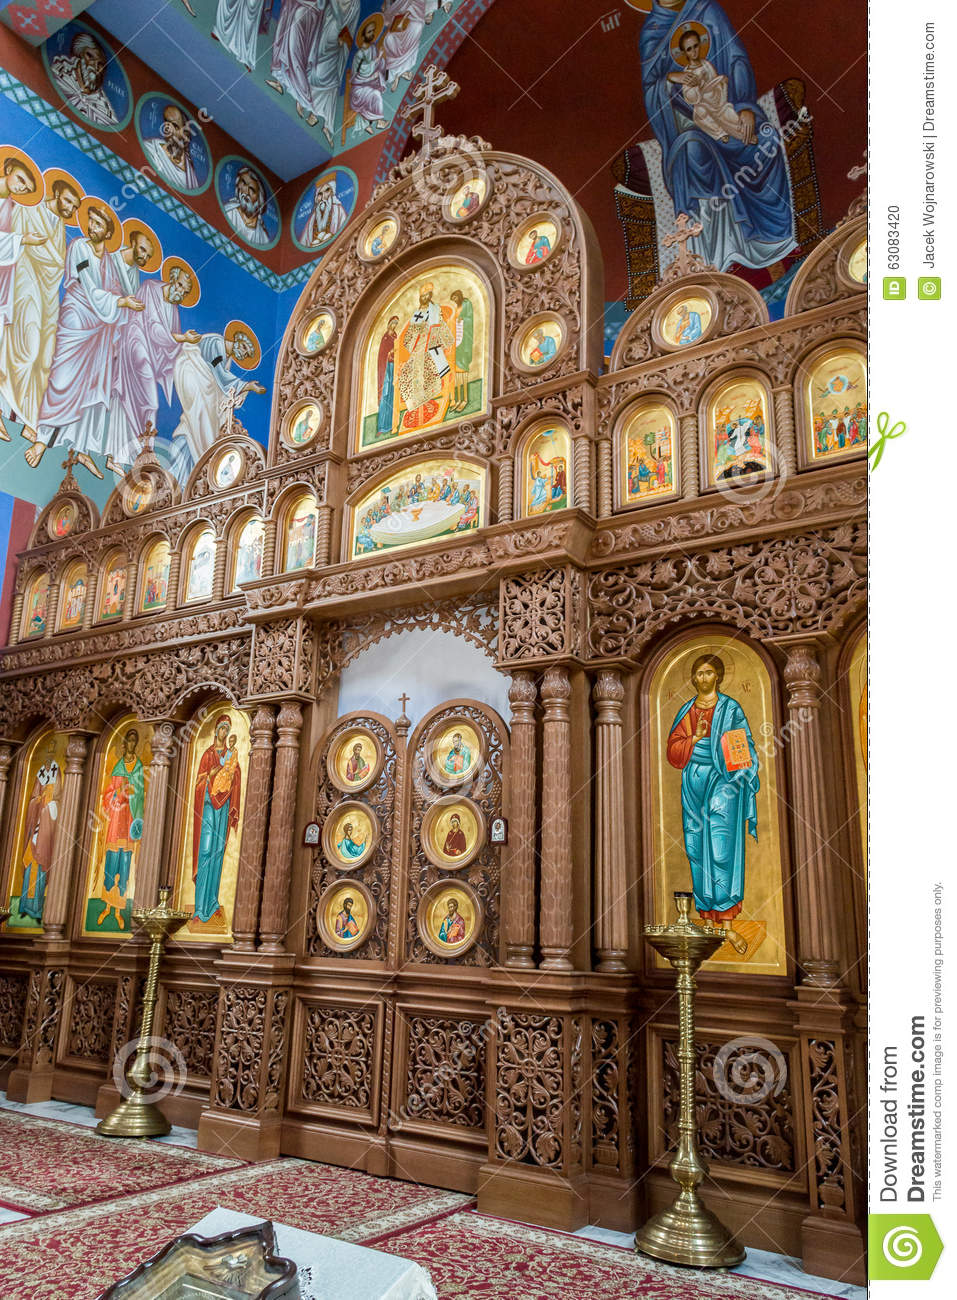 Download La Paroisse Orthodoxe De St Nicholas Altar B Image éditorial - Image du vertical, occidental: 63083420